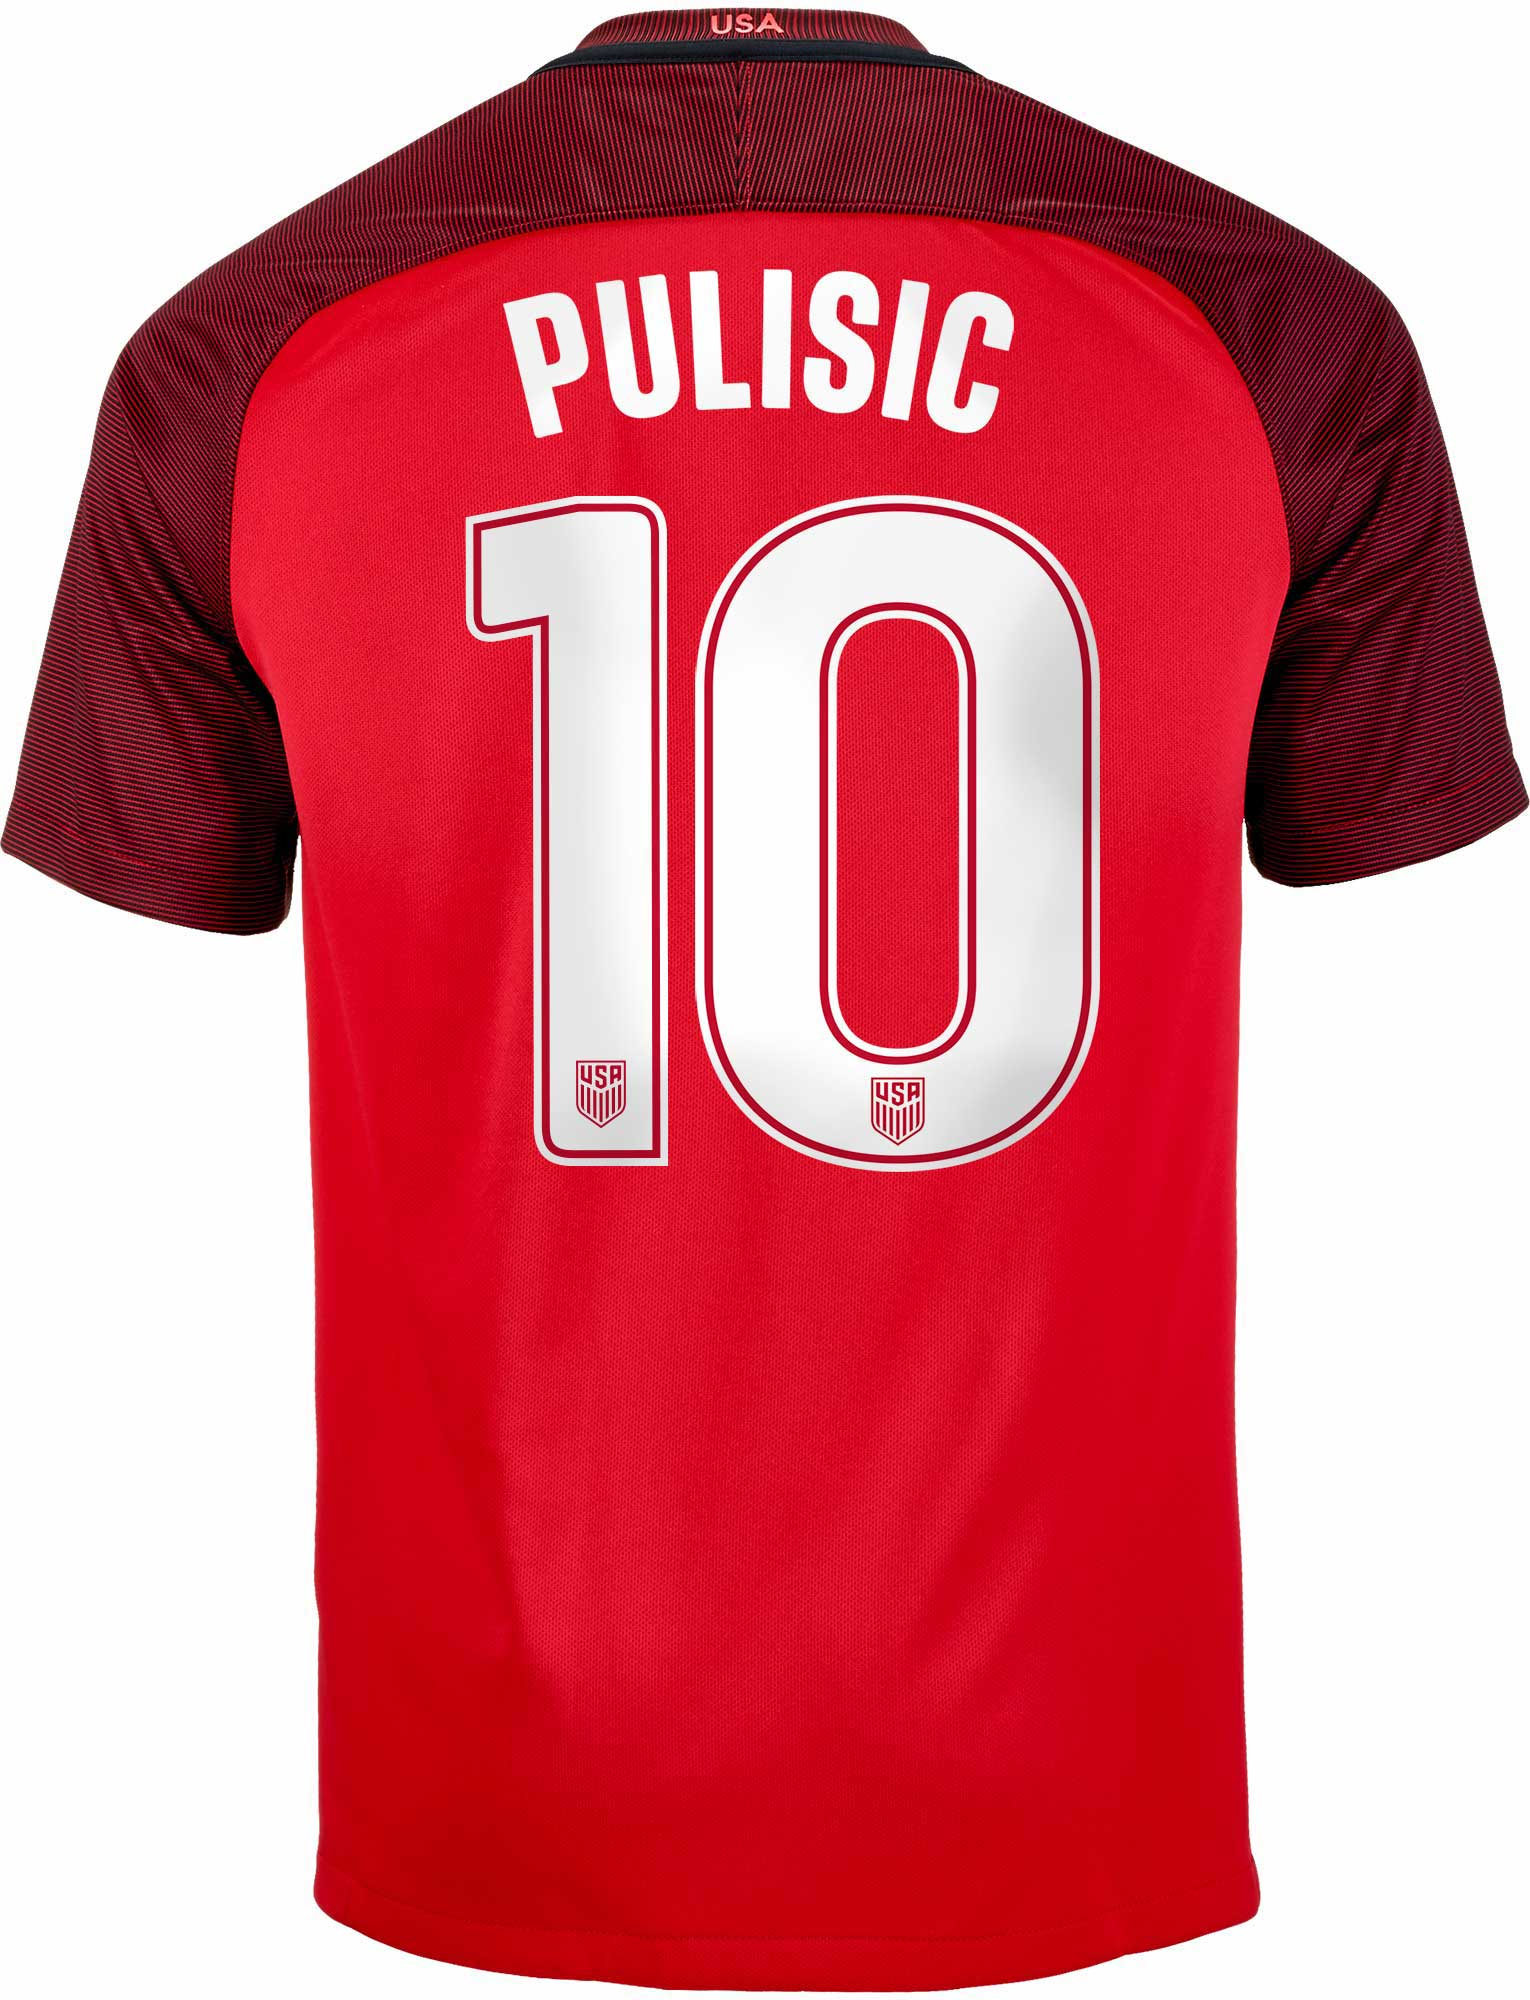 finest selection abb44 52cff Nike Christian Pulisic USA 3rd Jersey 2017-18